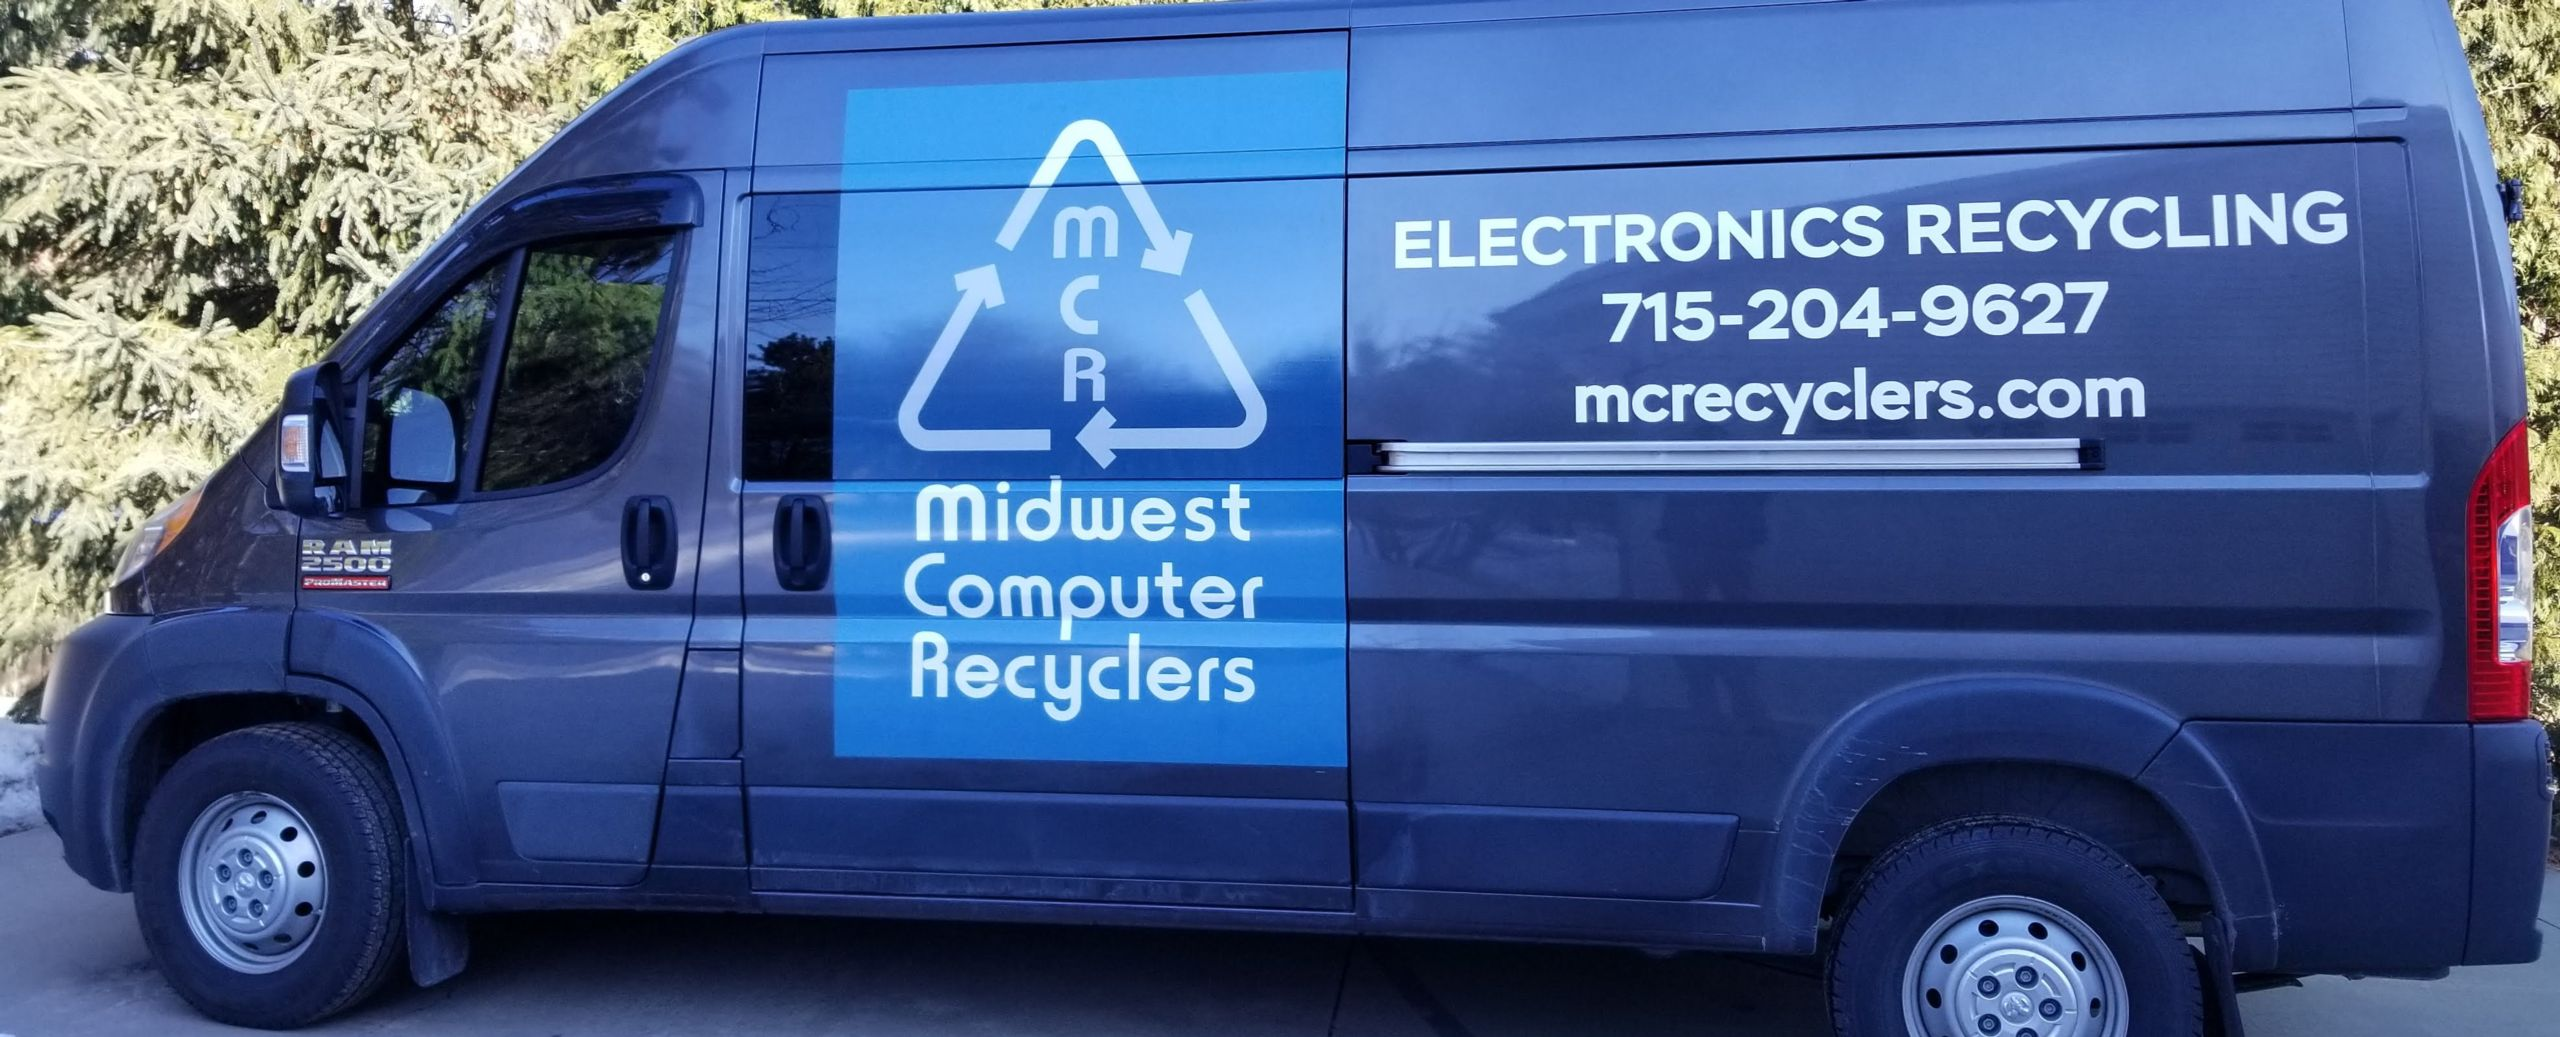 Certified Electronic Recyclers in Stevens Point, WI